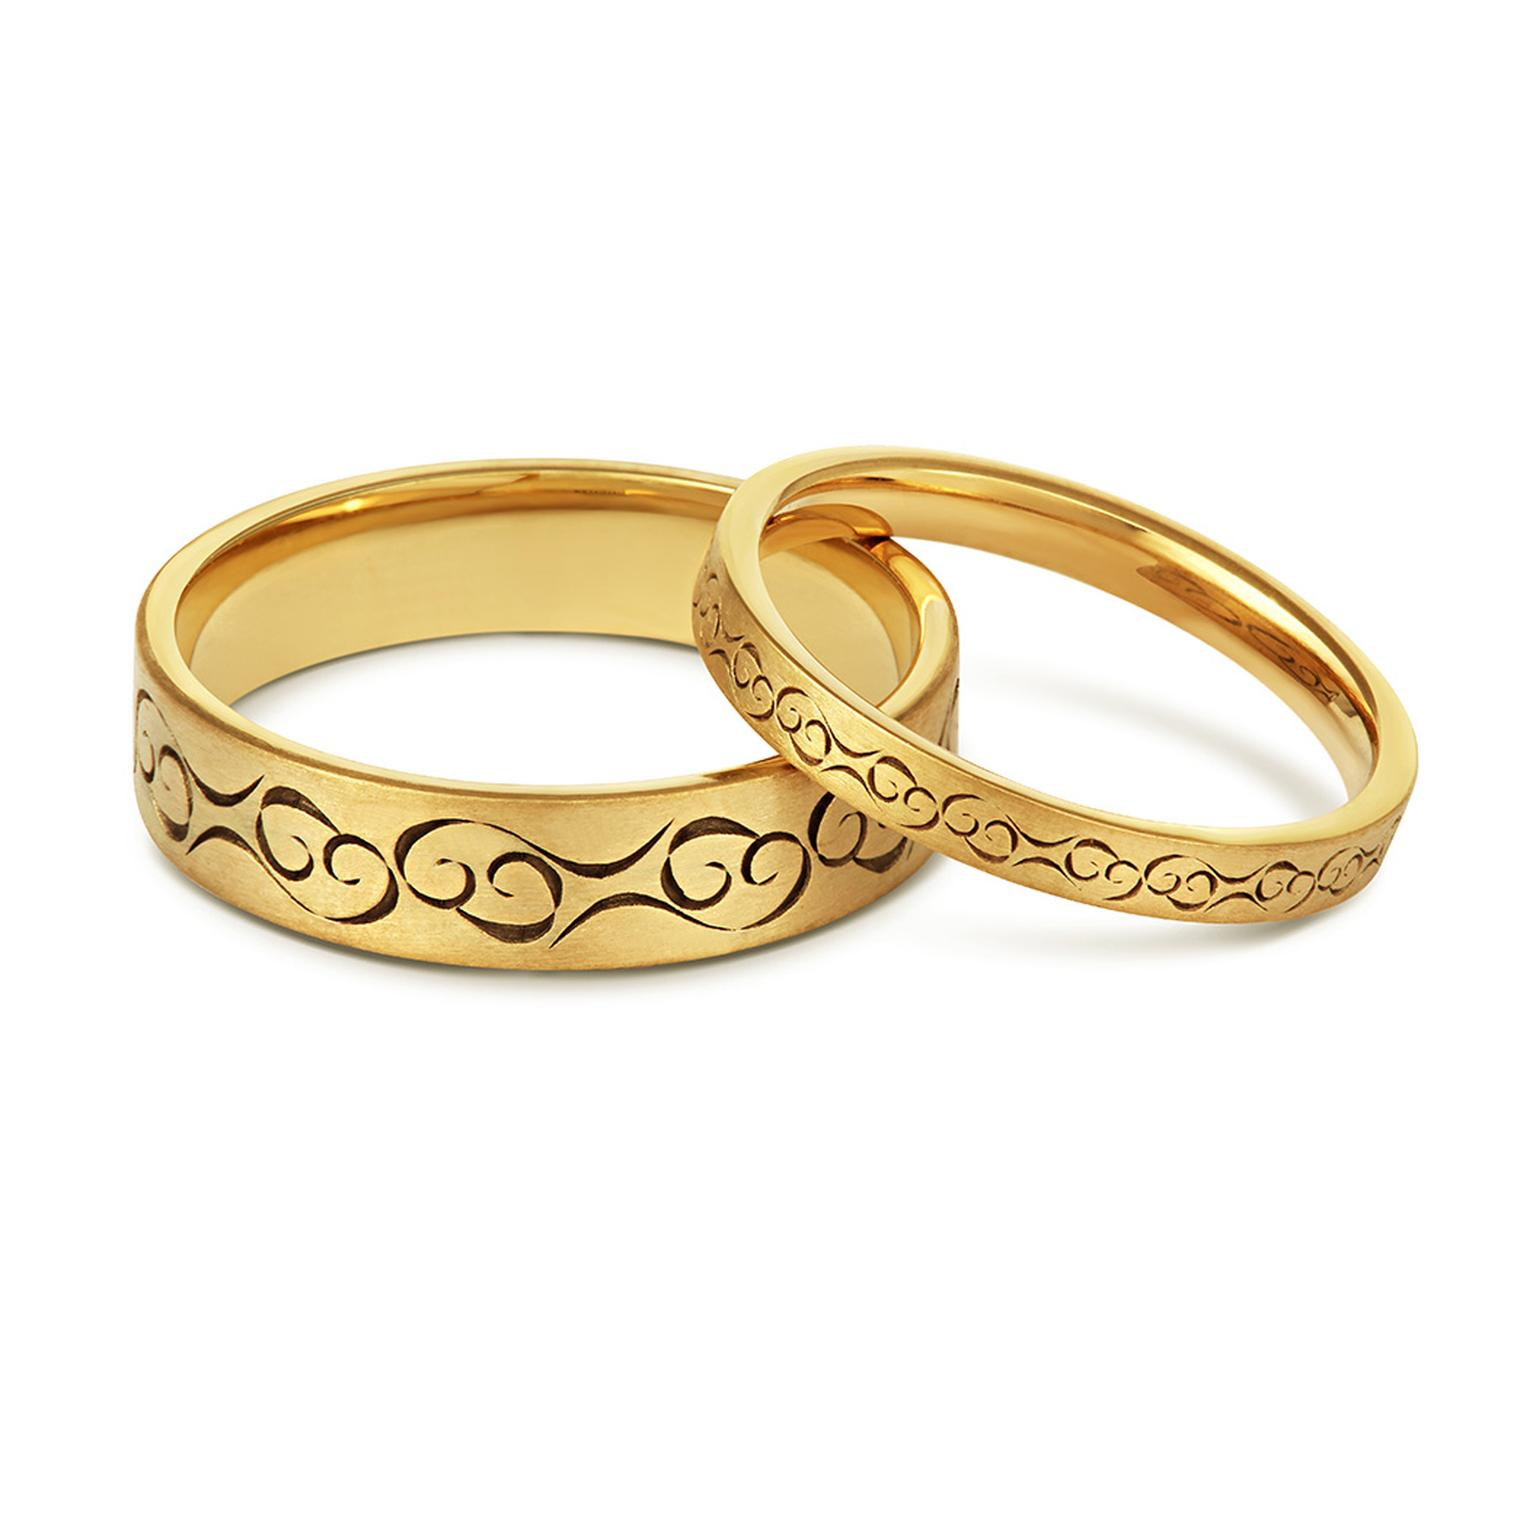 The perfect wedding bands for same couples